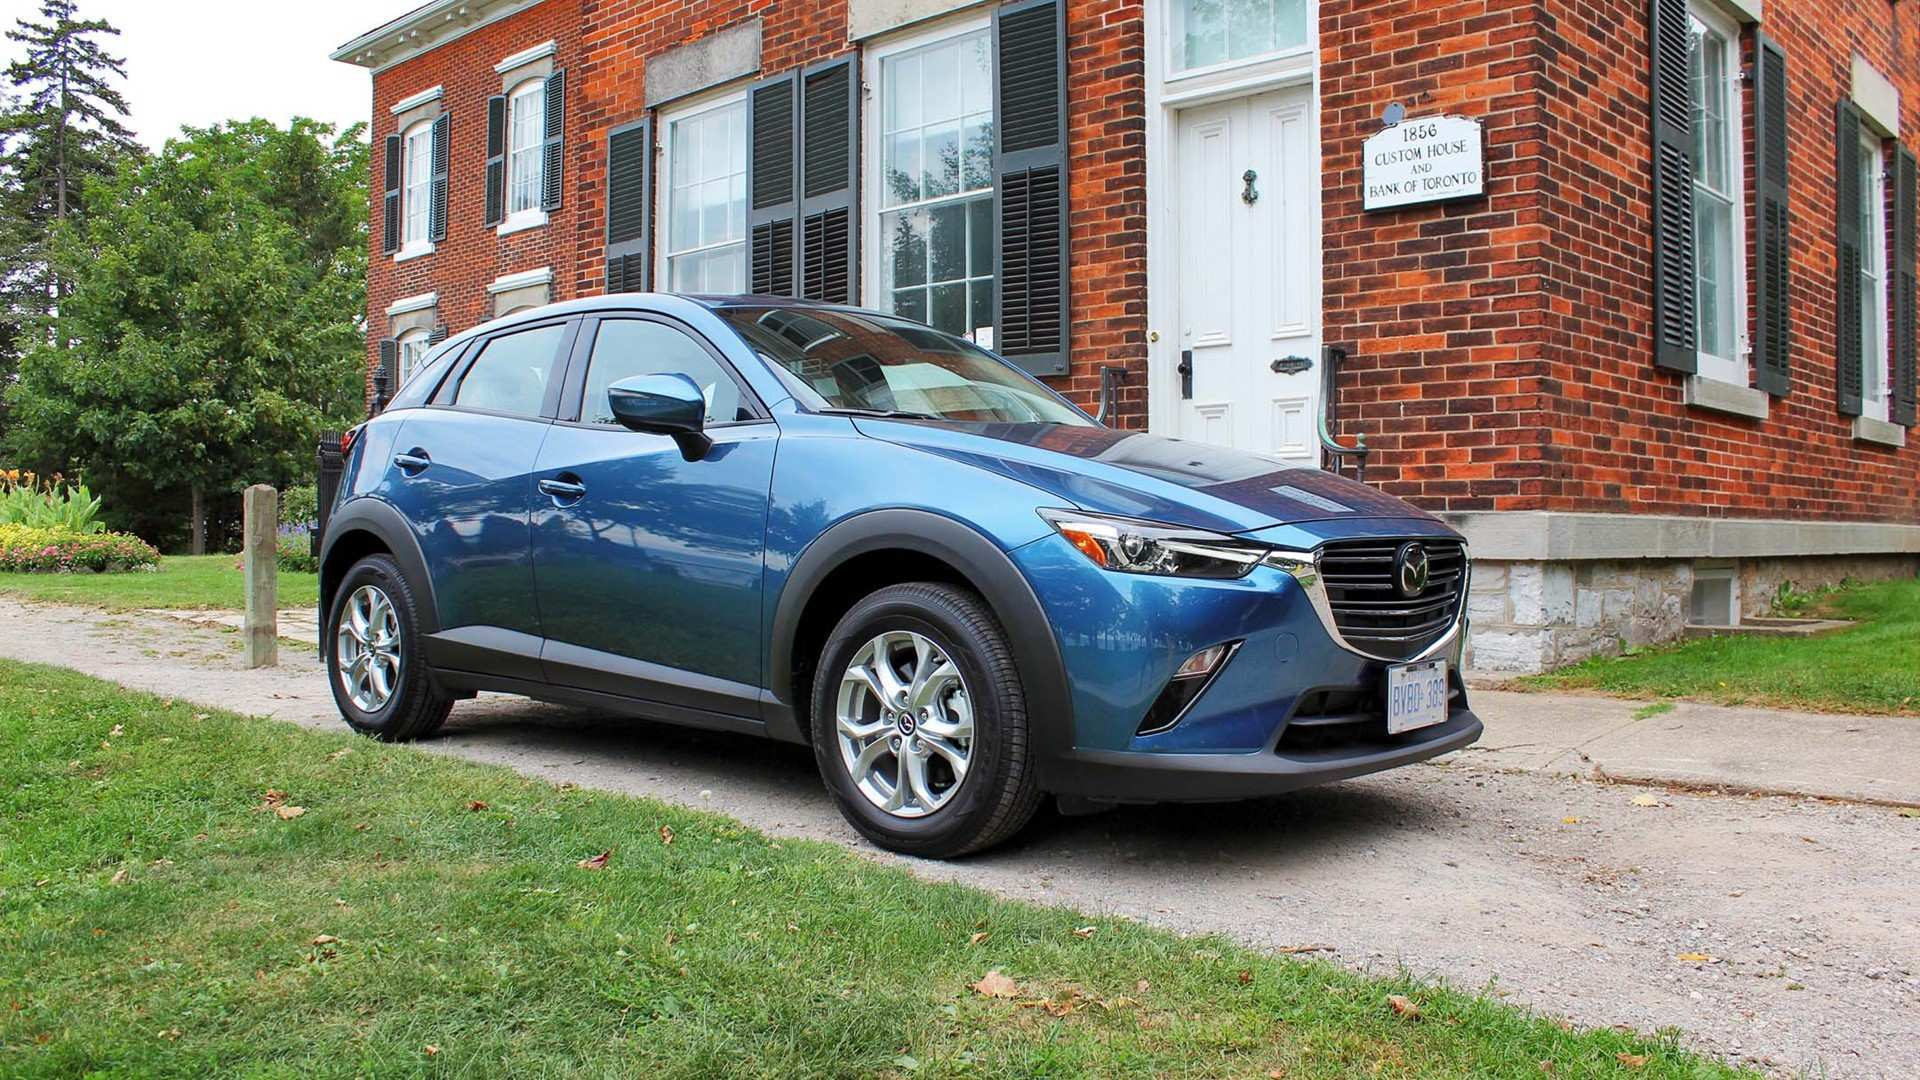 81 The Best 2019 Mazda CX 3 Exterior